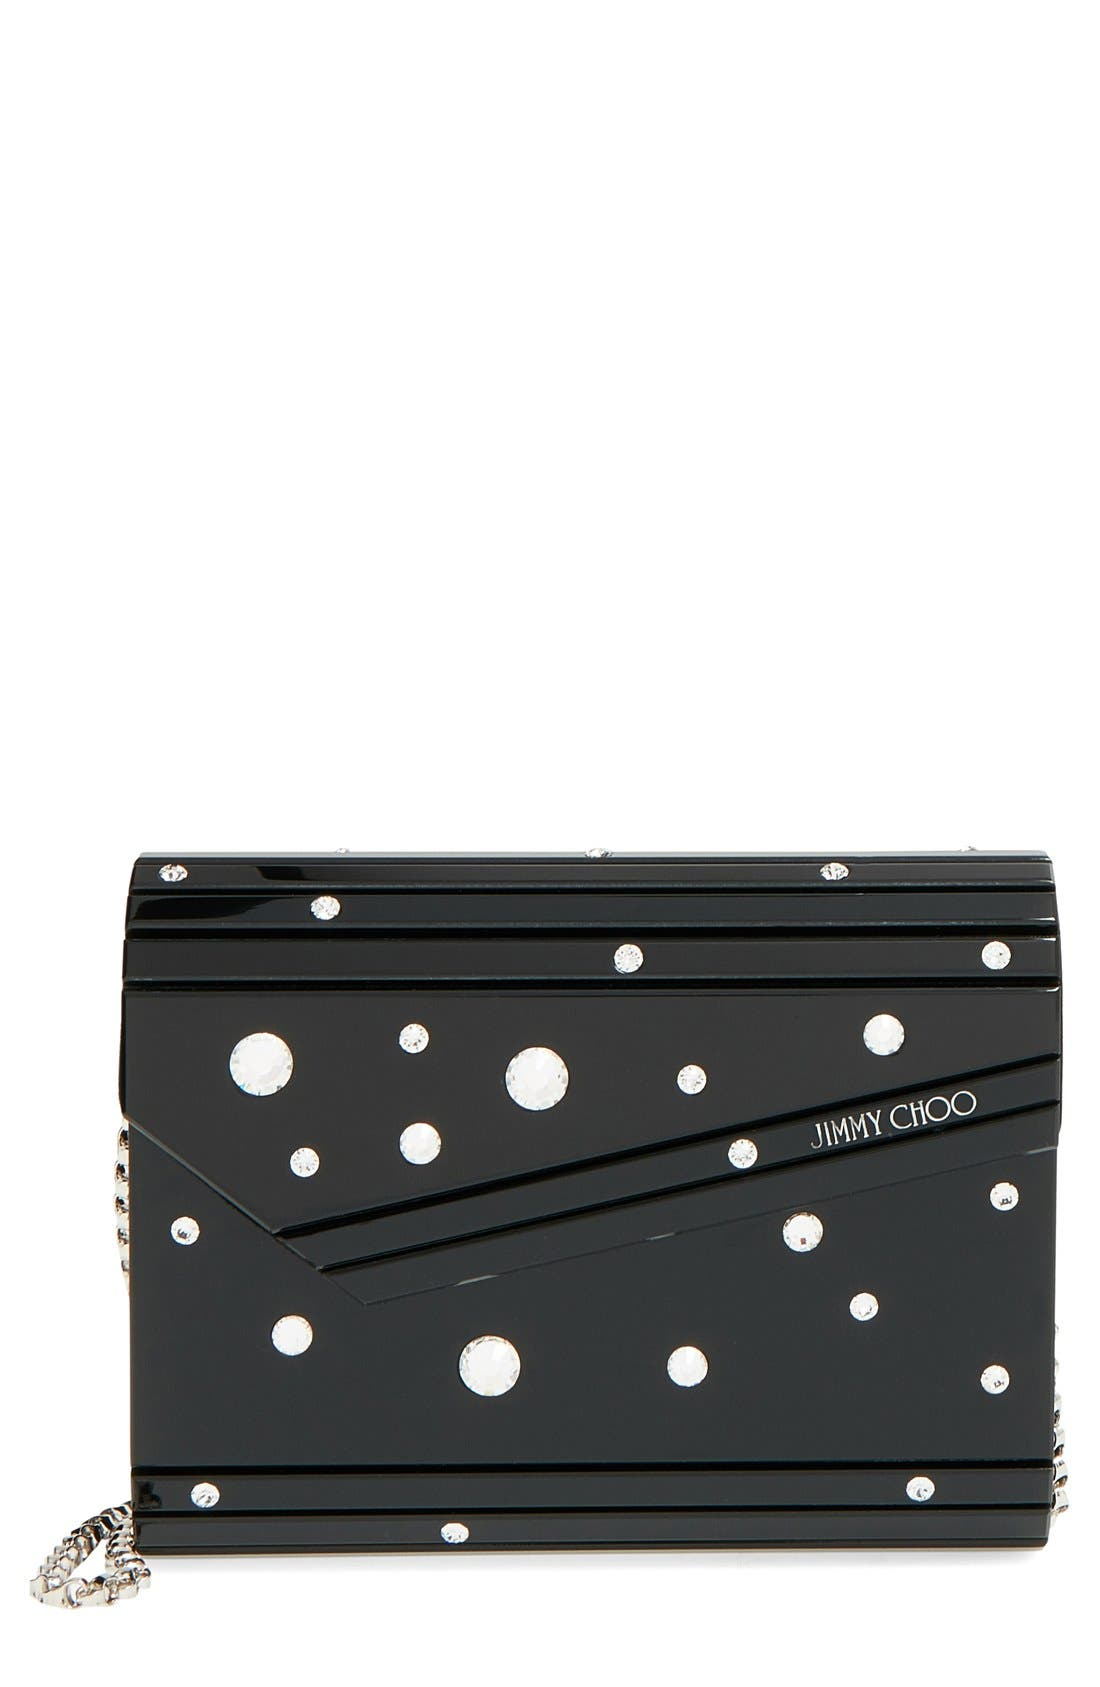 Main Image - Jimmy Choo 'Candy - Crystal' Clutch